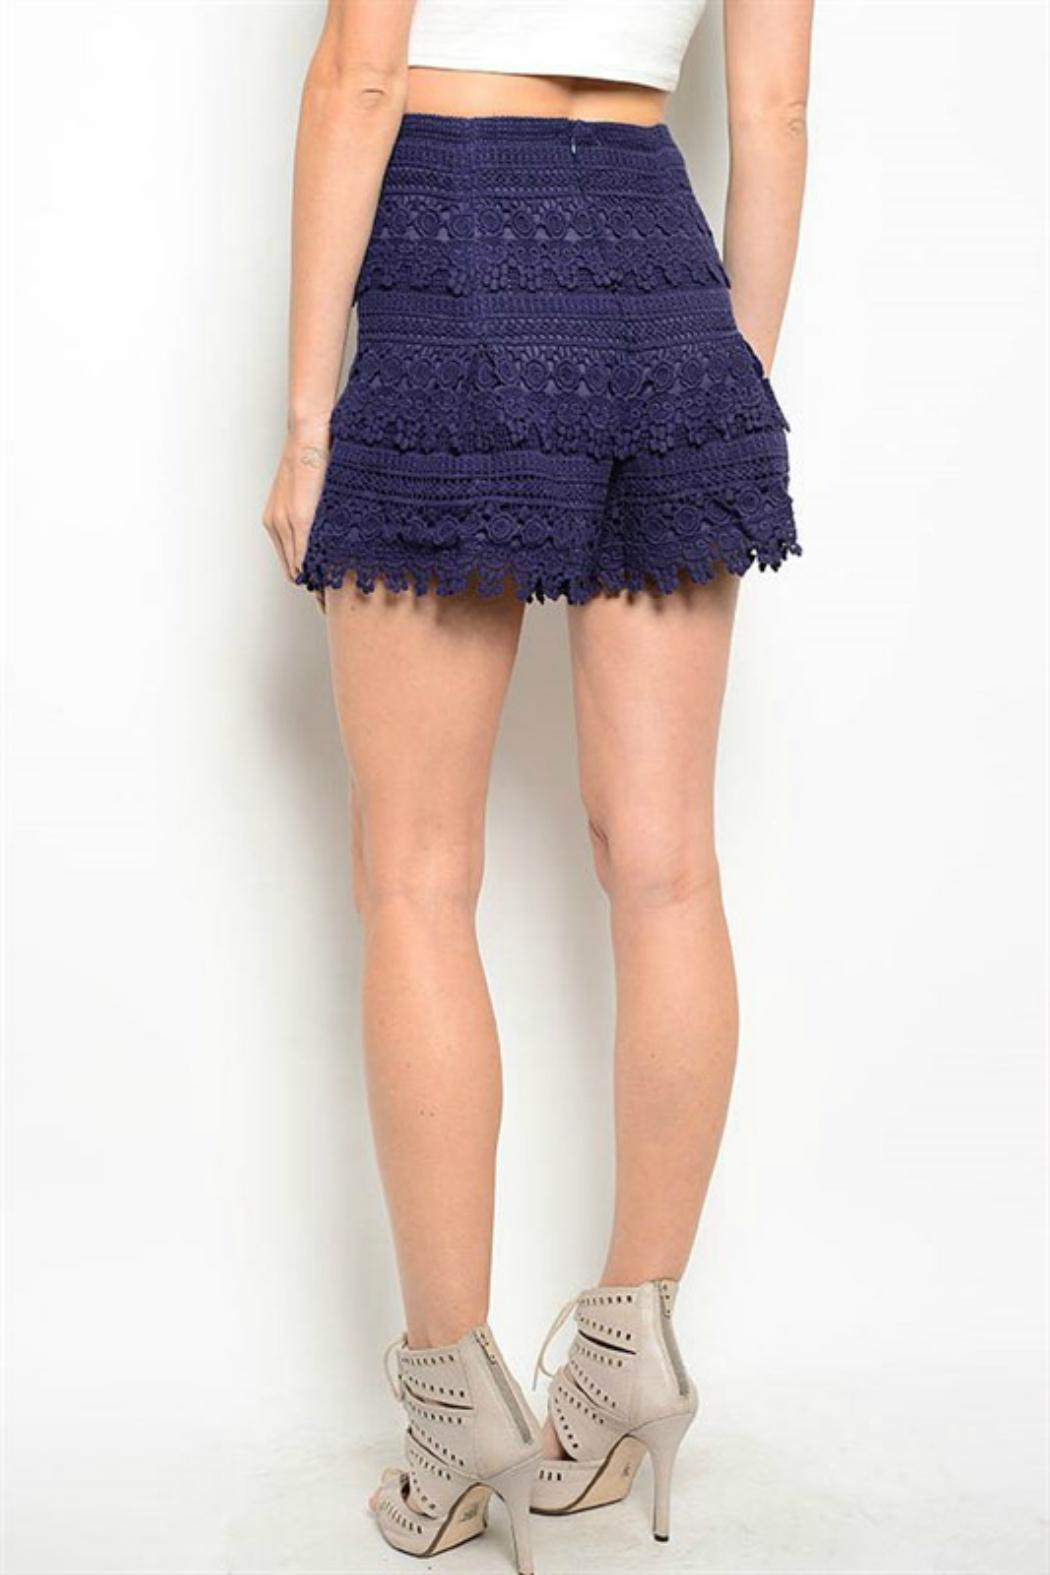 New Pretty Little Things Crochet Lace Shorts From New Crochet Lace Shorts Of Unique 47 Photos Crochet Lace Shorts